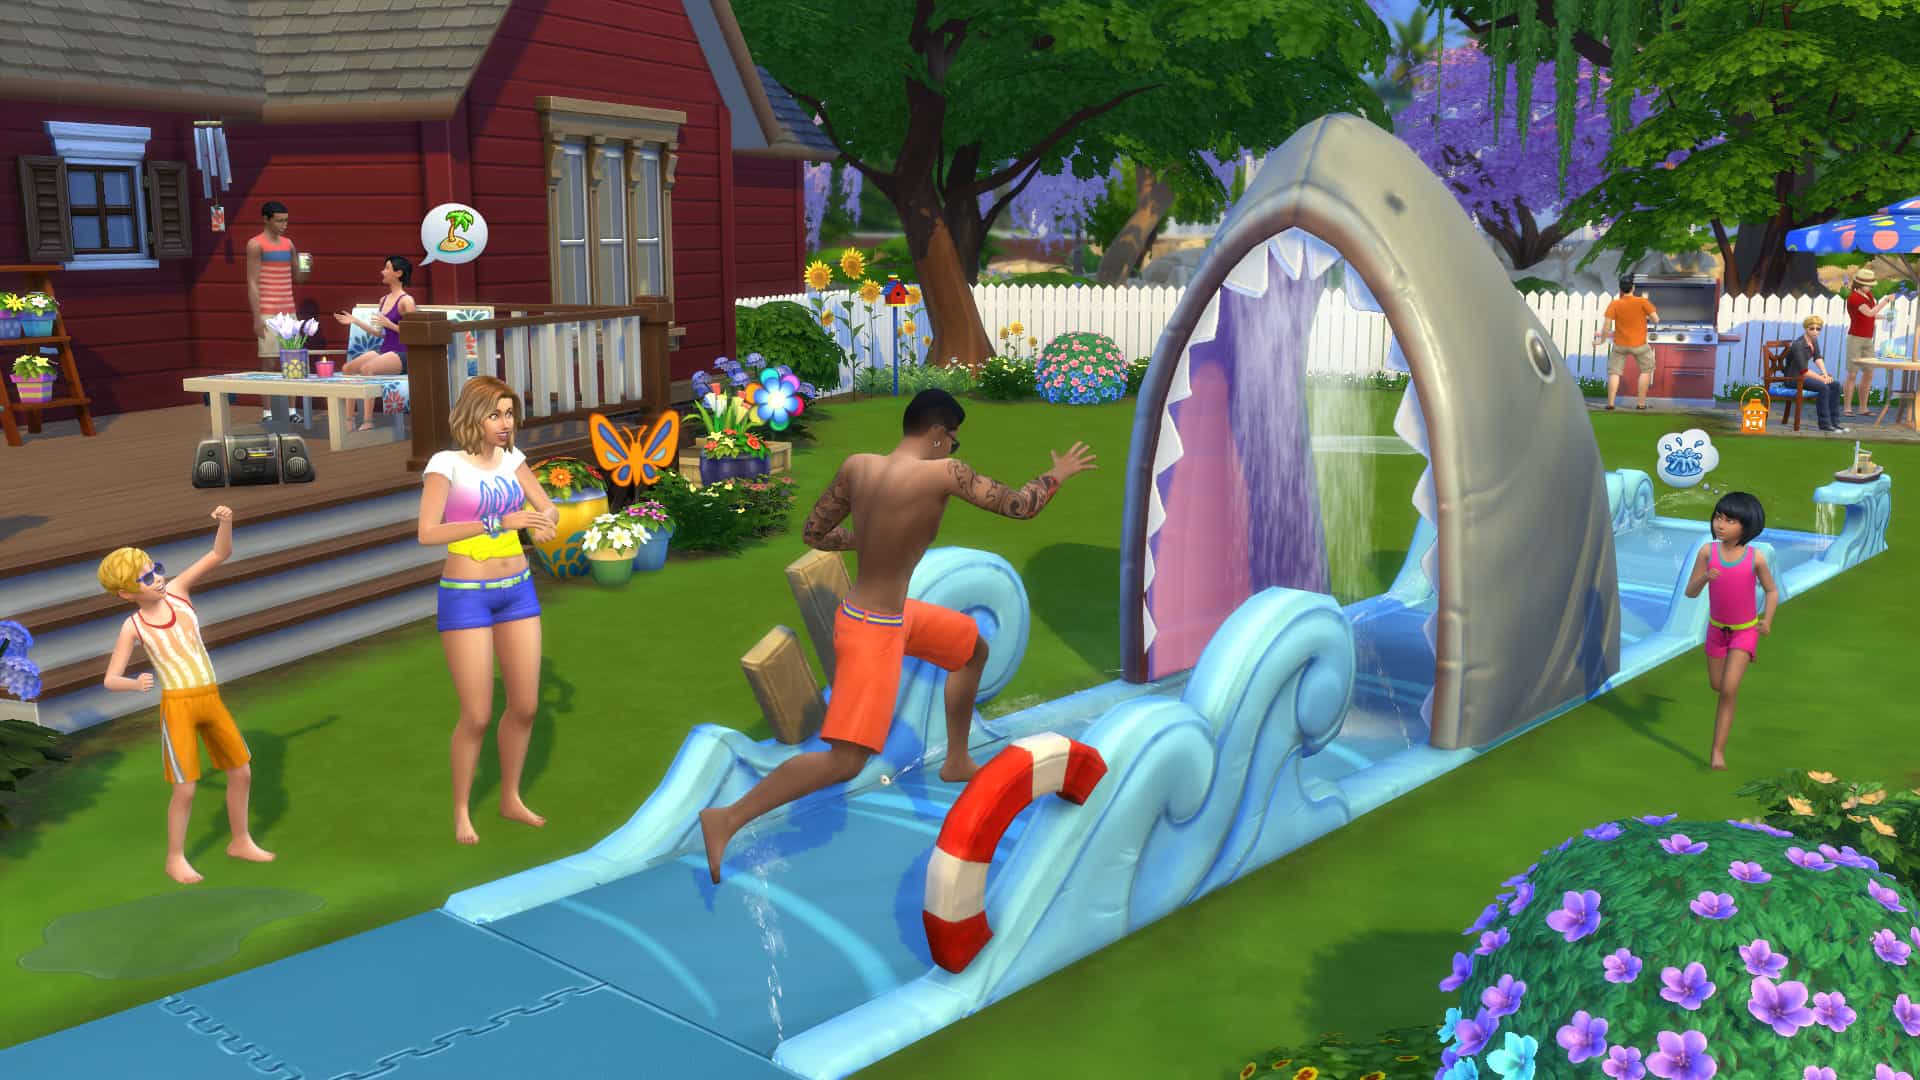 the sims 4 free download full version pc no survey